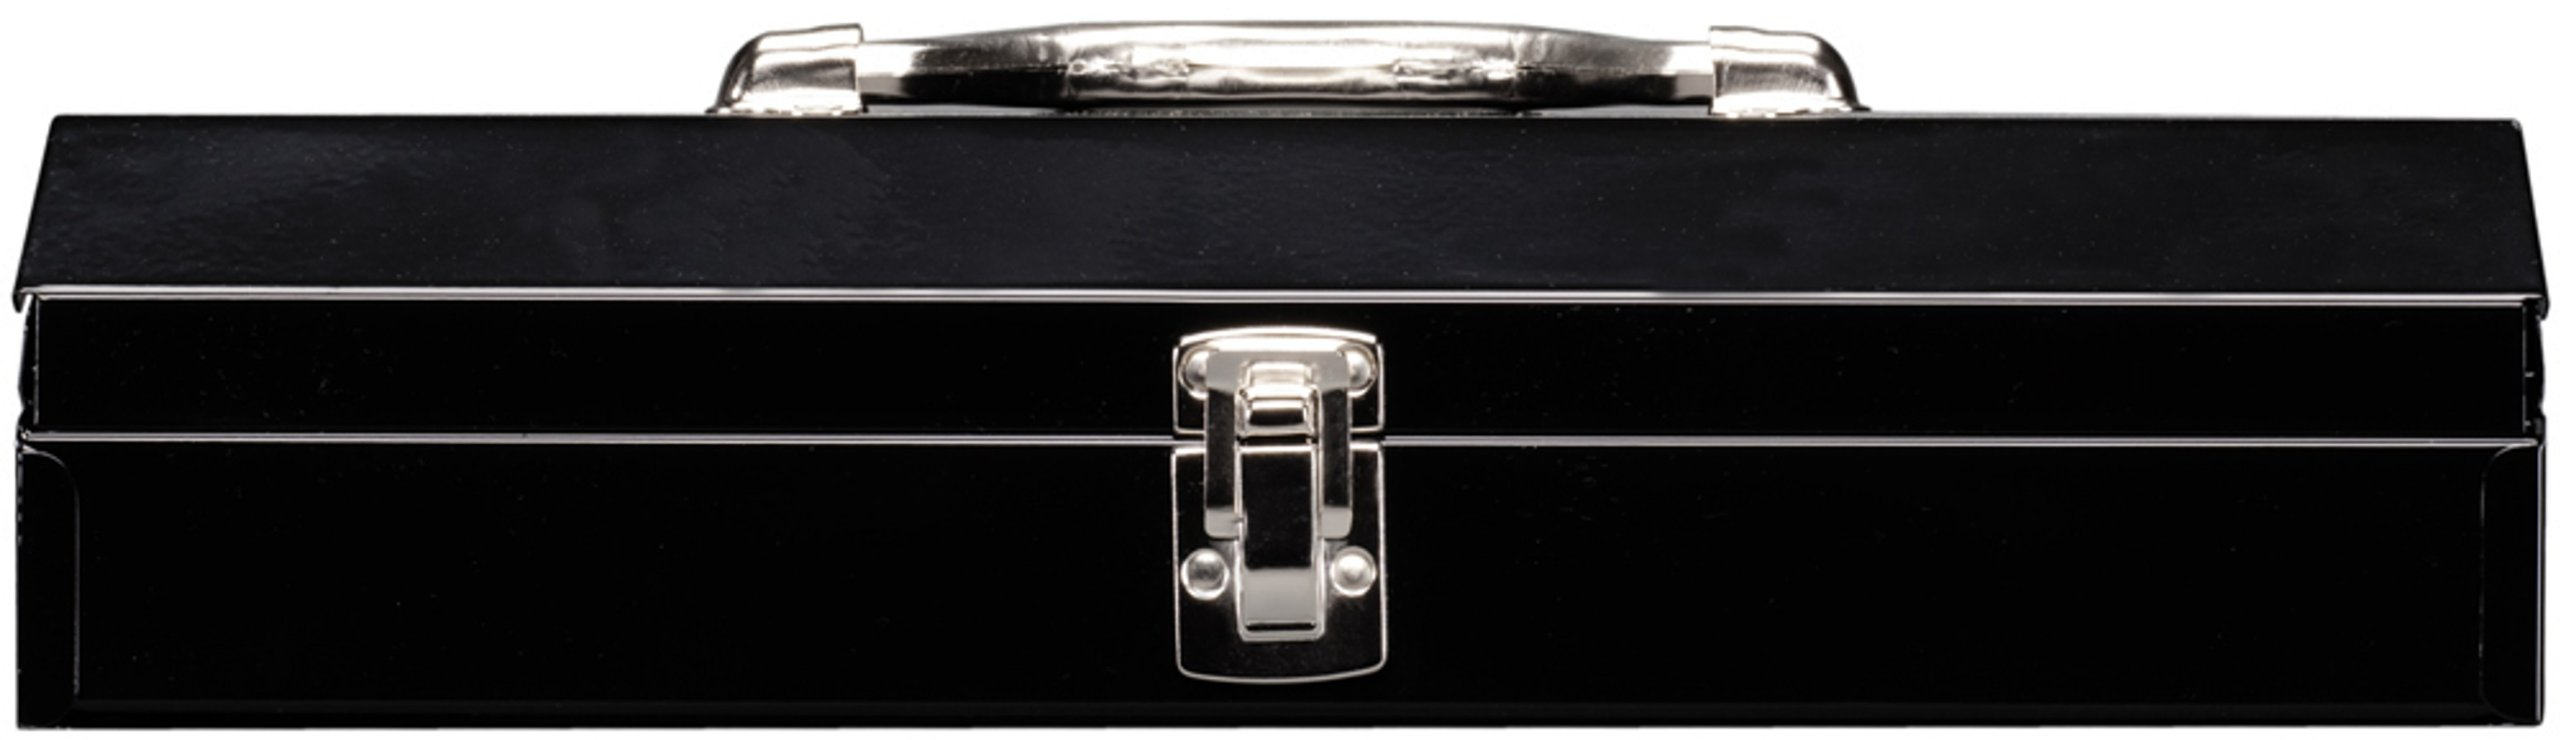 Stack-On SHB-15 15-Inch Household/Project Steel Tool Box, Black